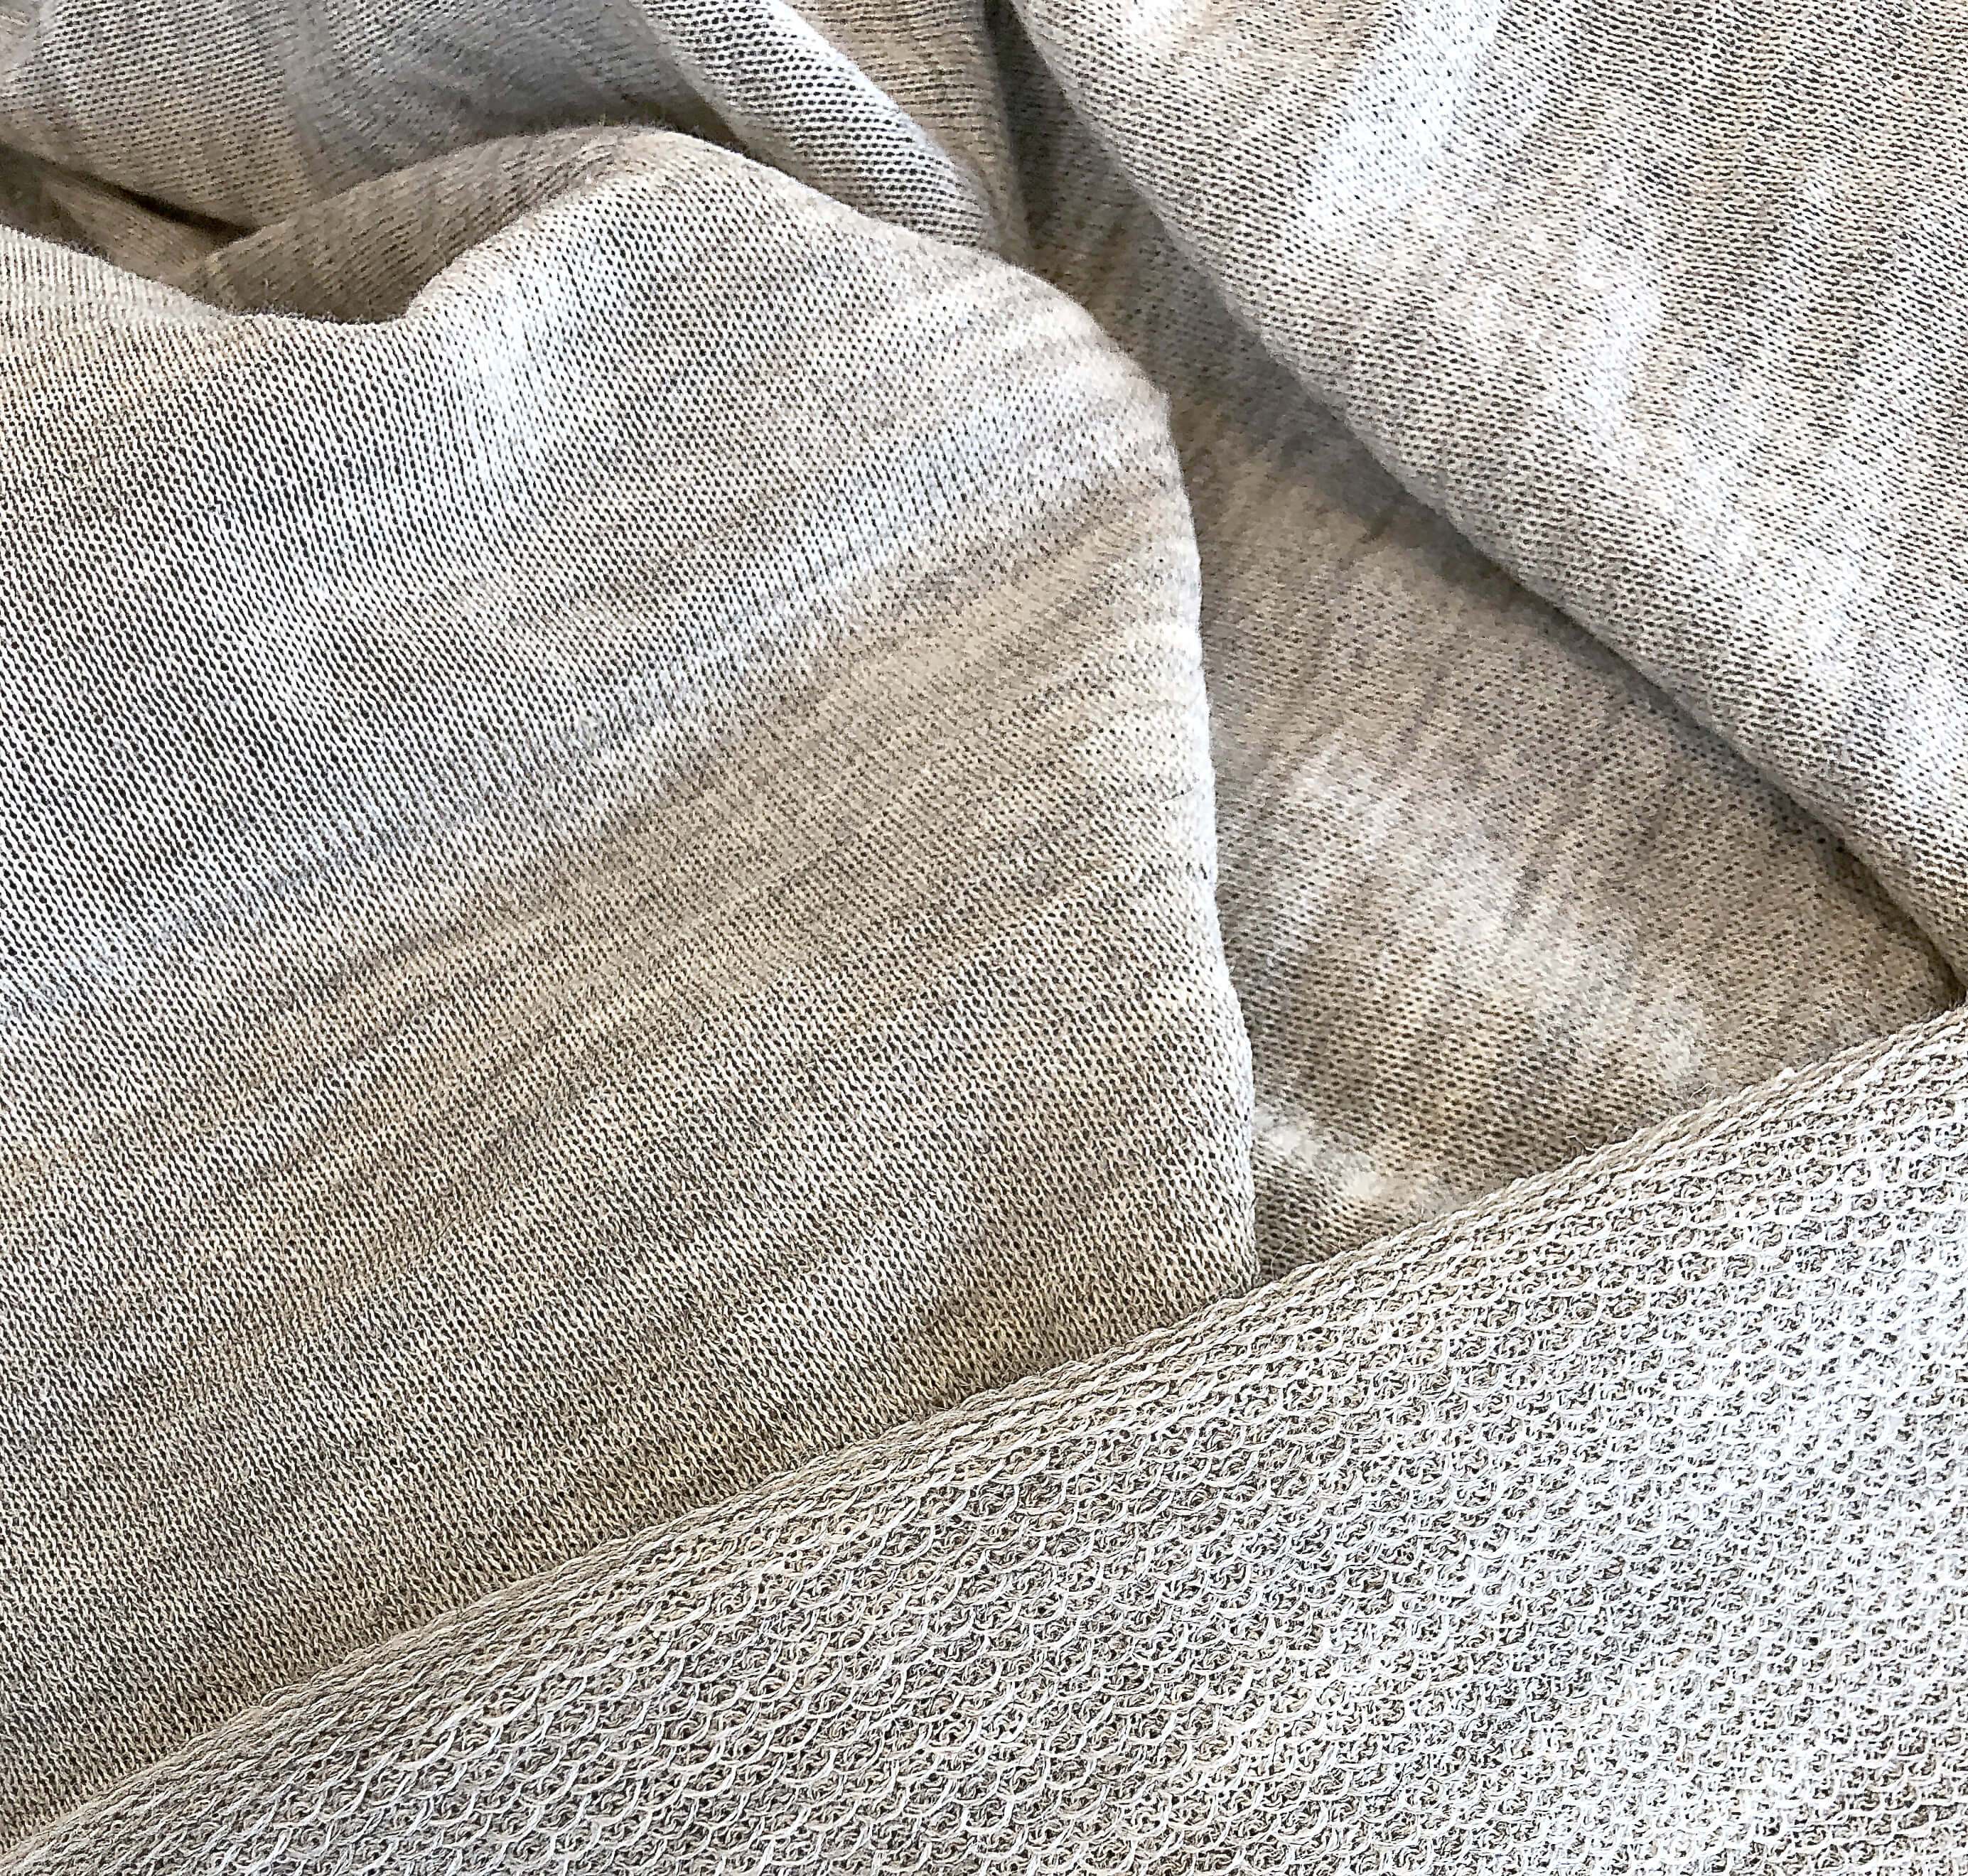 Samples of jersey knitted fabric from ethically sourced wool